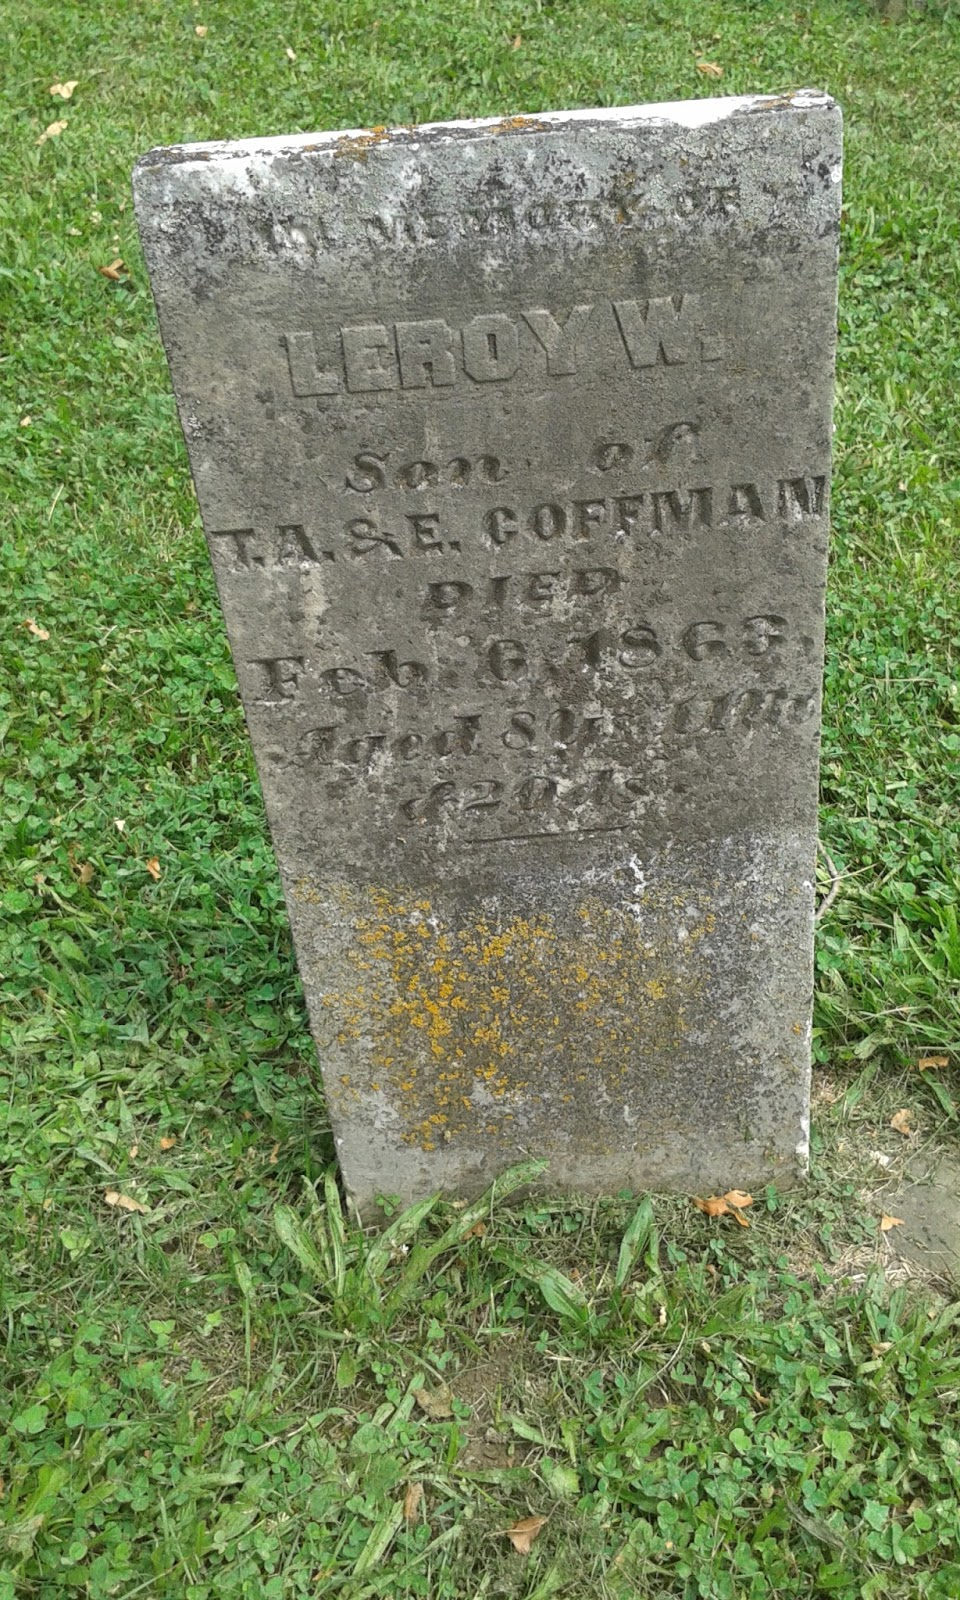 Indiana knox county ragsdale - He Is Buried In Lickspring Baptist Church Cemetery In Trafalgar Johnson County Indiana